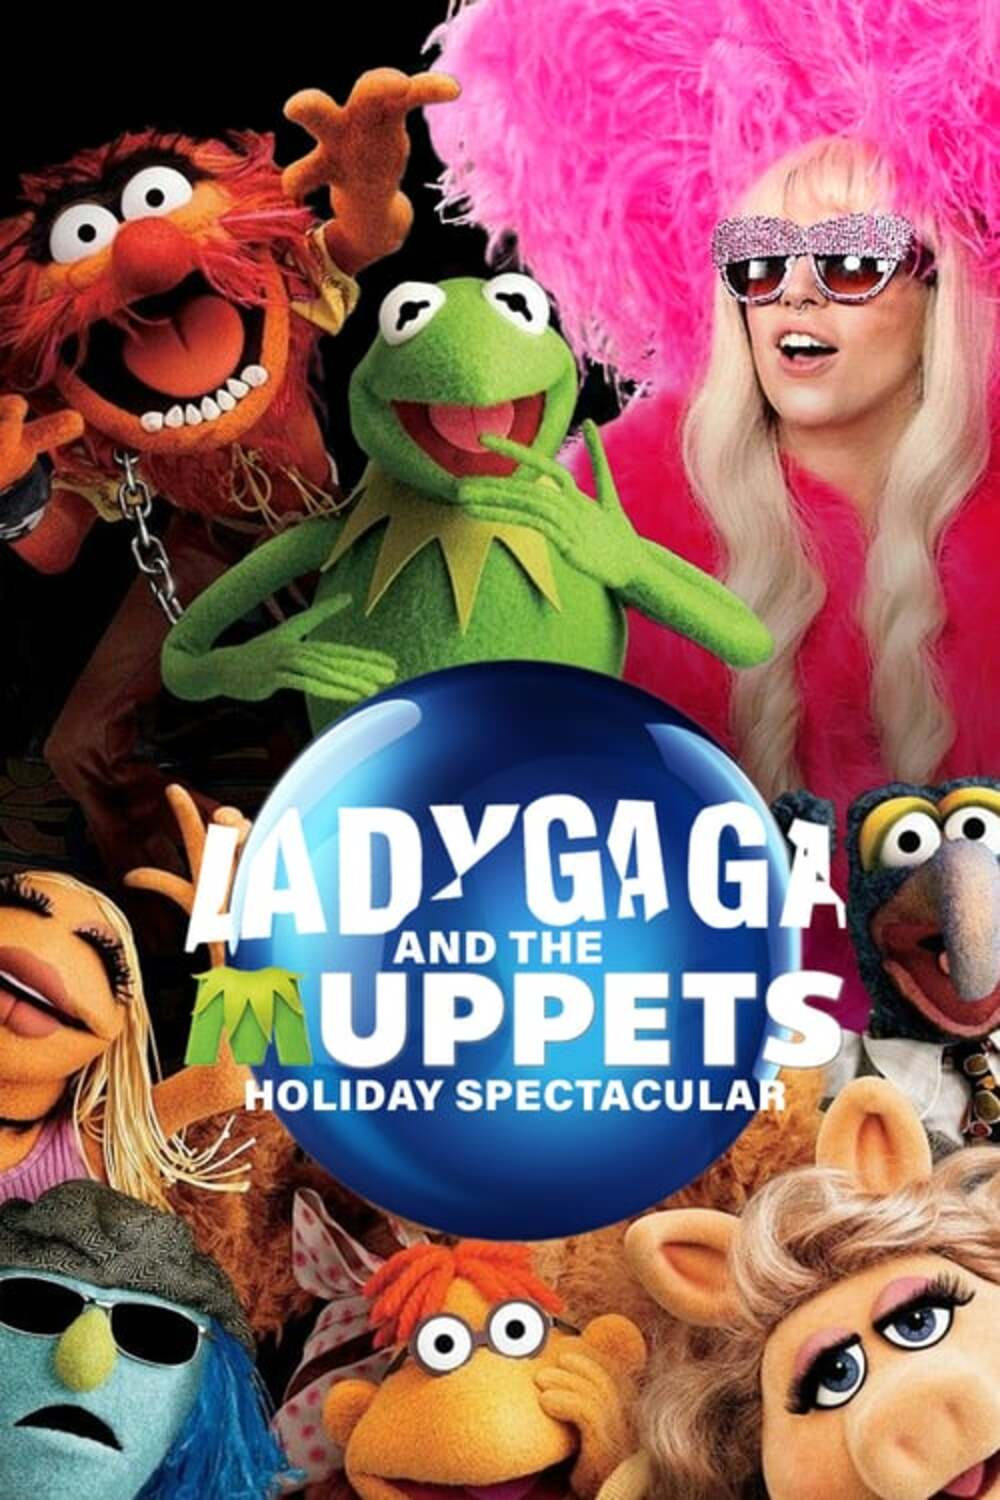 affiche poster lady gaga muppets holiday spectacular disney